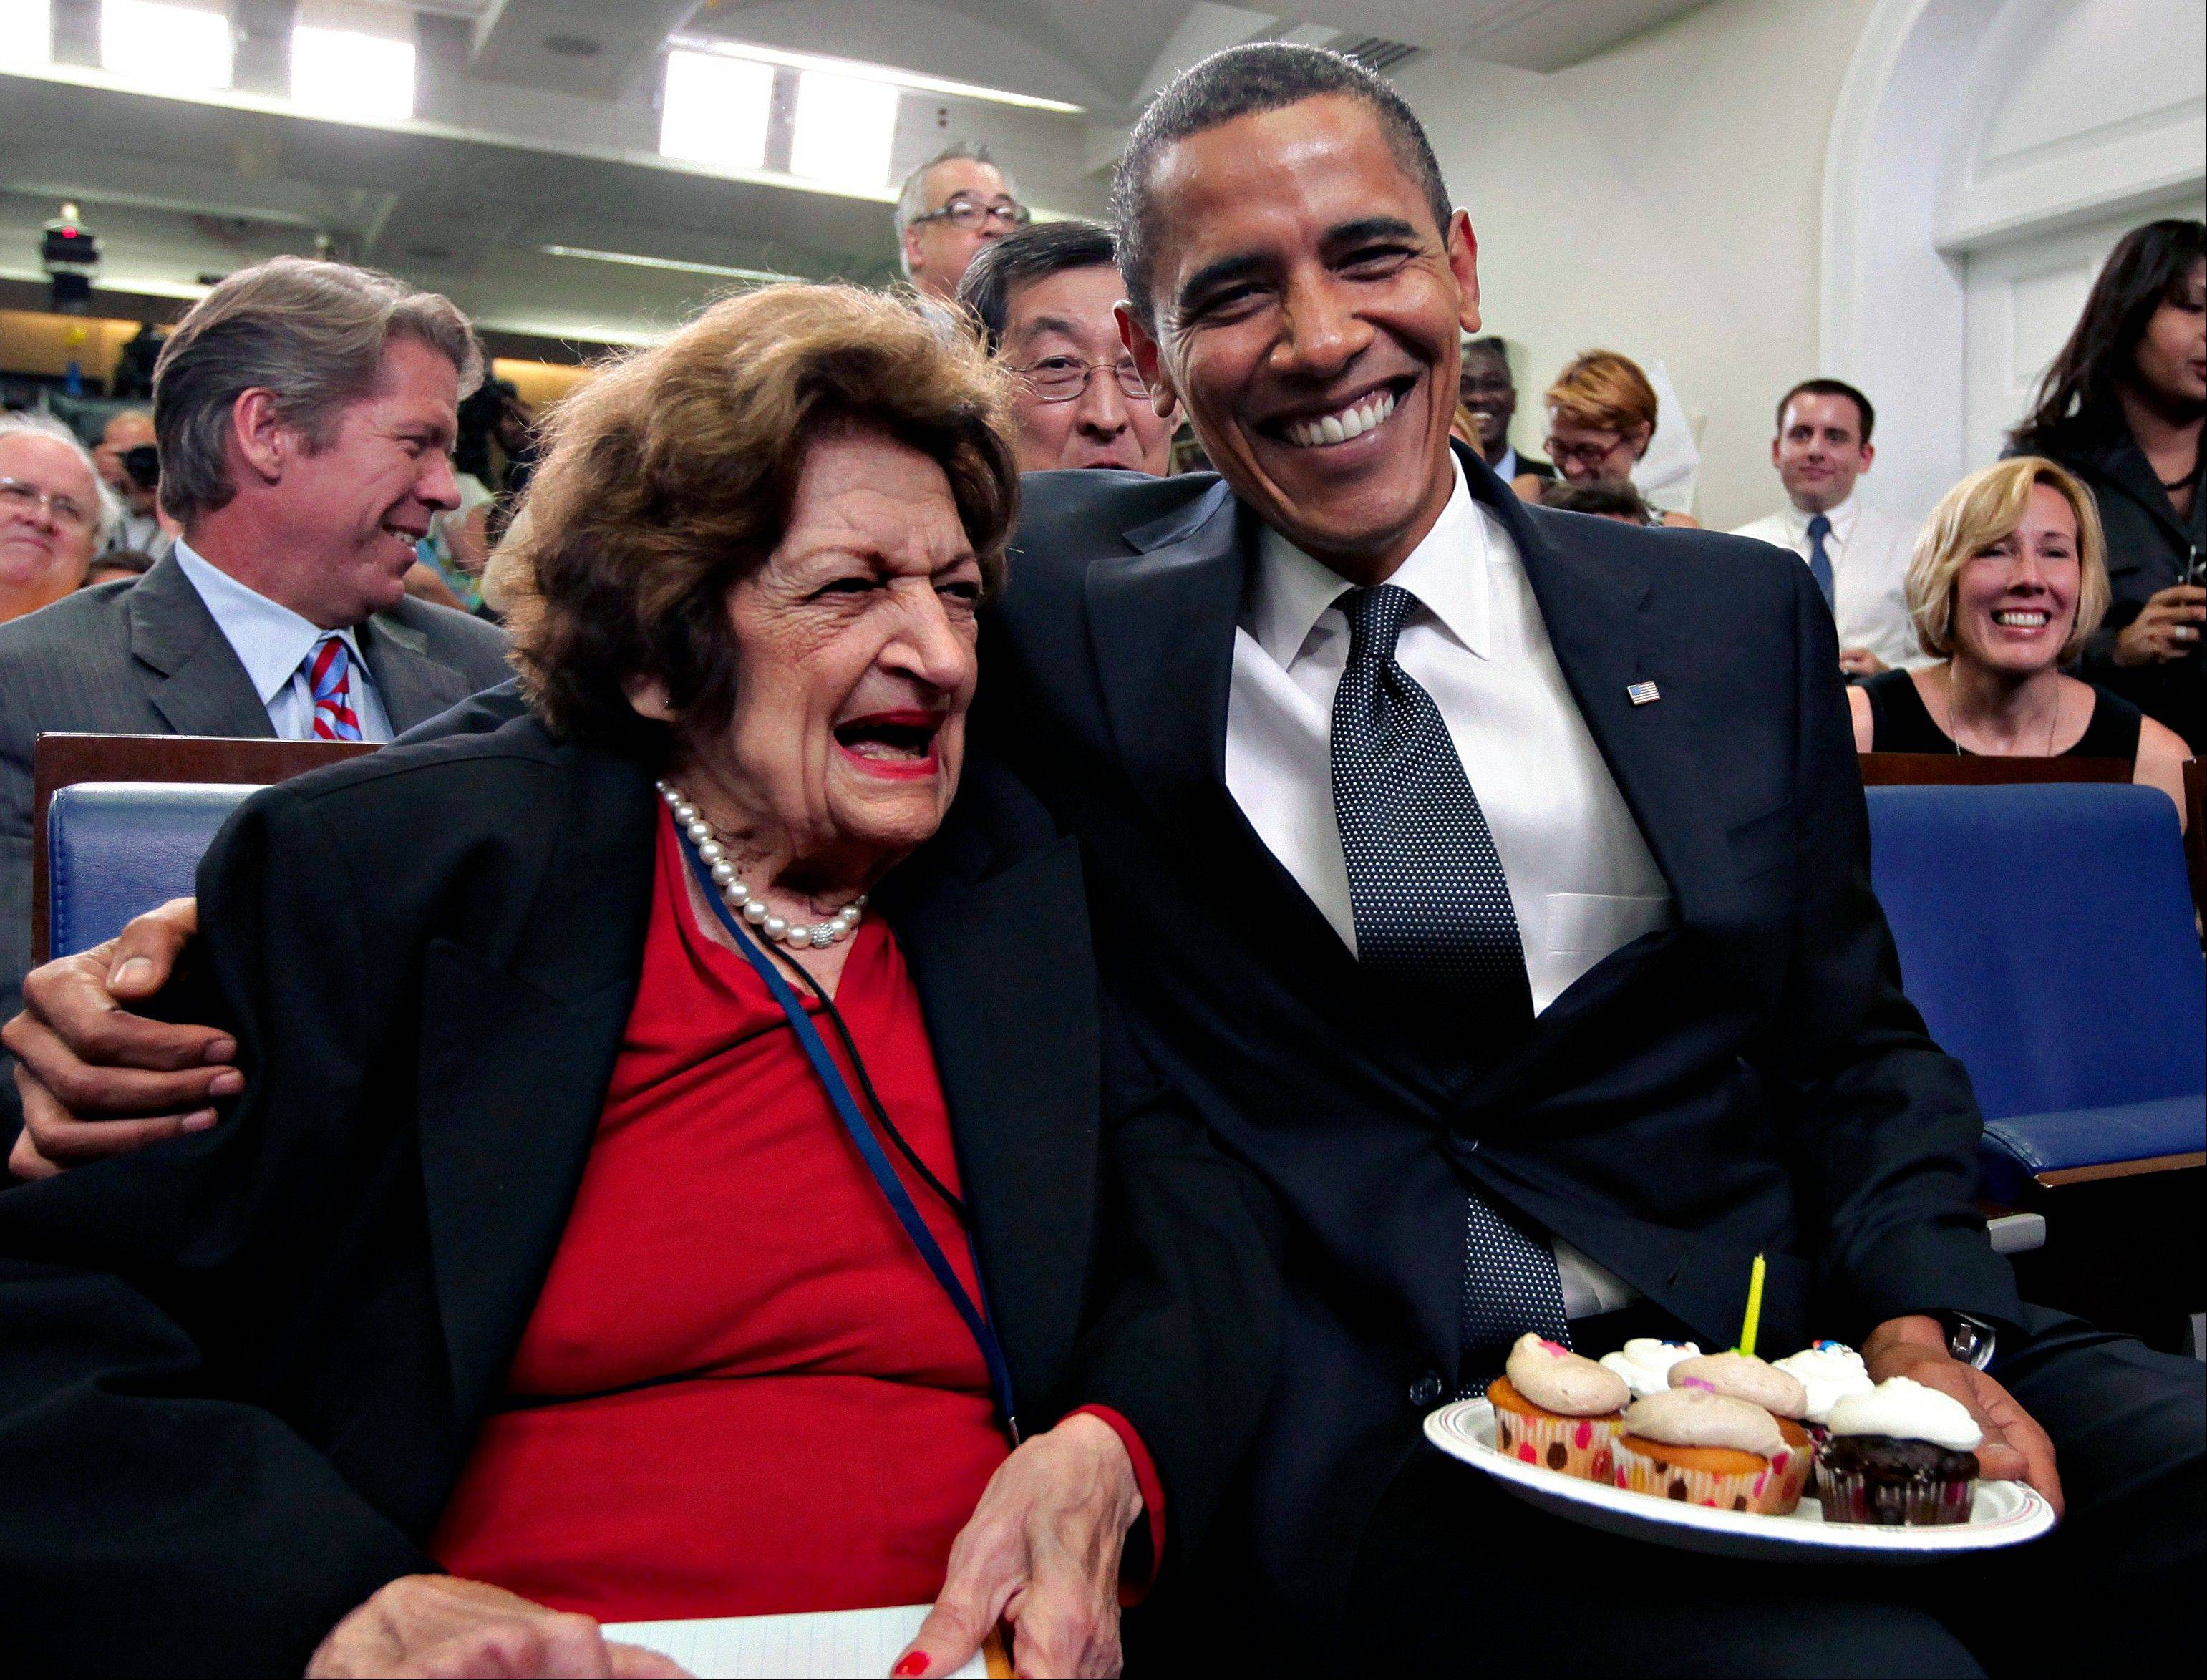 Associated Press In this Aug. 4, 2009, file photo, veteran White House reporter Helen Thomas, left, celebrates her 89th birthday with President Barack Obama, celebrating his 48th birthday, in the White House Press Briefing Room in Washington. Thomas, a pioneer for women in journalism and an irrepressible White House correspondent, has died Saturday, July 20, 2013. She was 92.